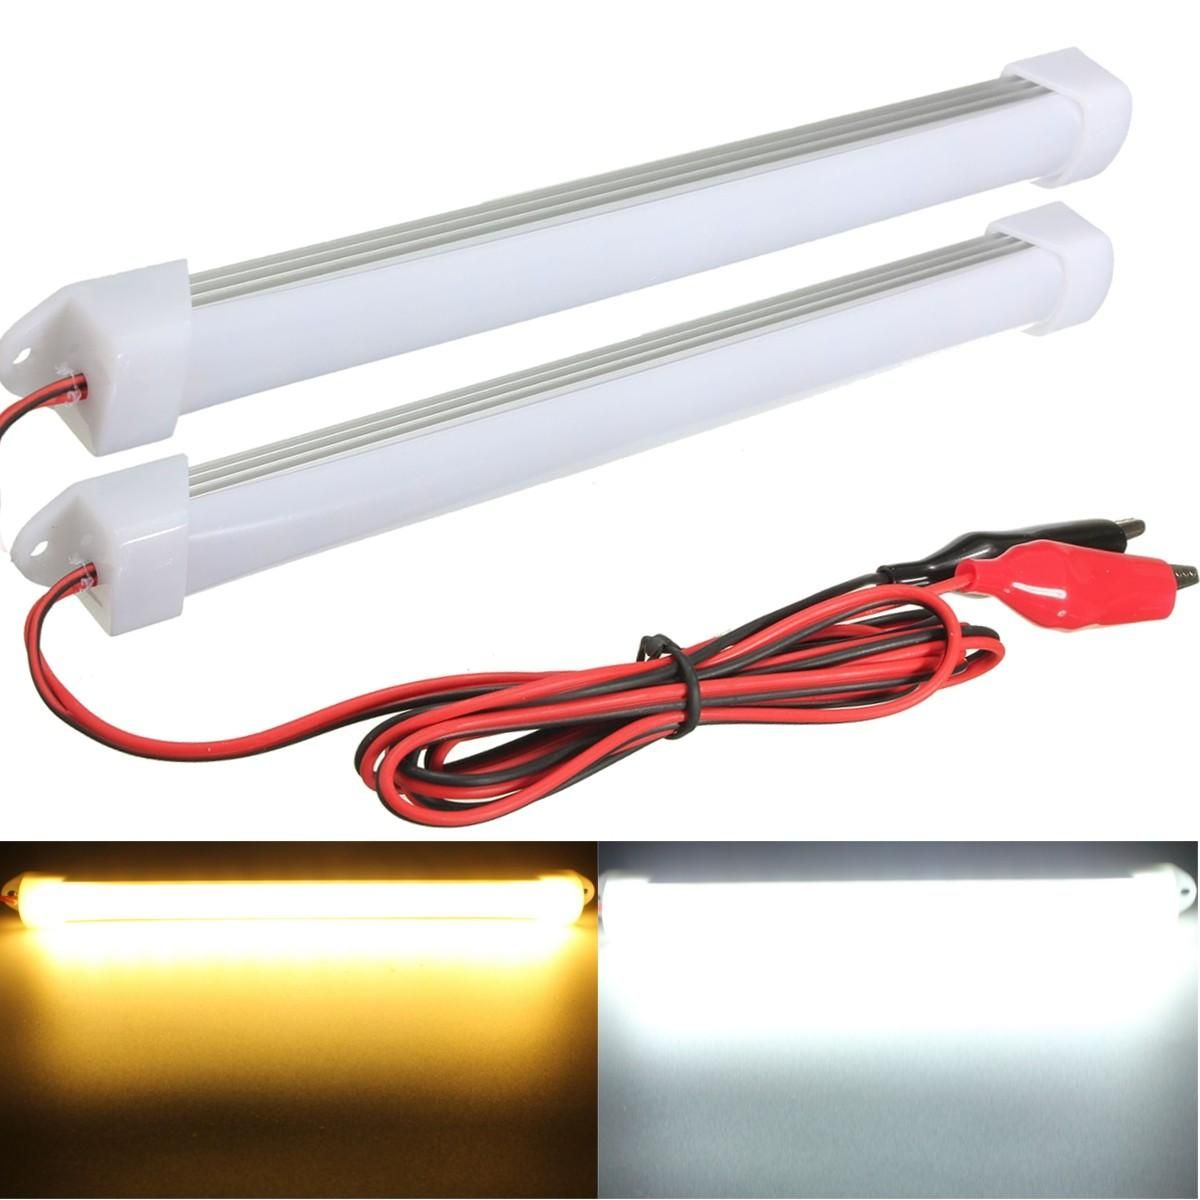 2017 New 2pcs 12v Led Car Interior Light Bar Tube Strip Lamp Van Boat Caravan Motorhome 12 99 Bar Lighting Car Interior Interior Lighting